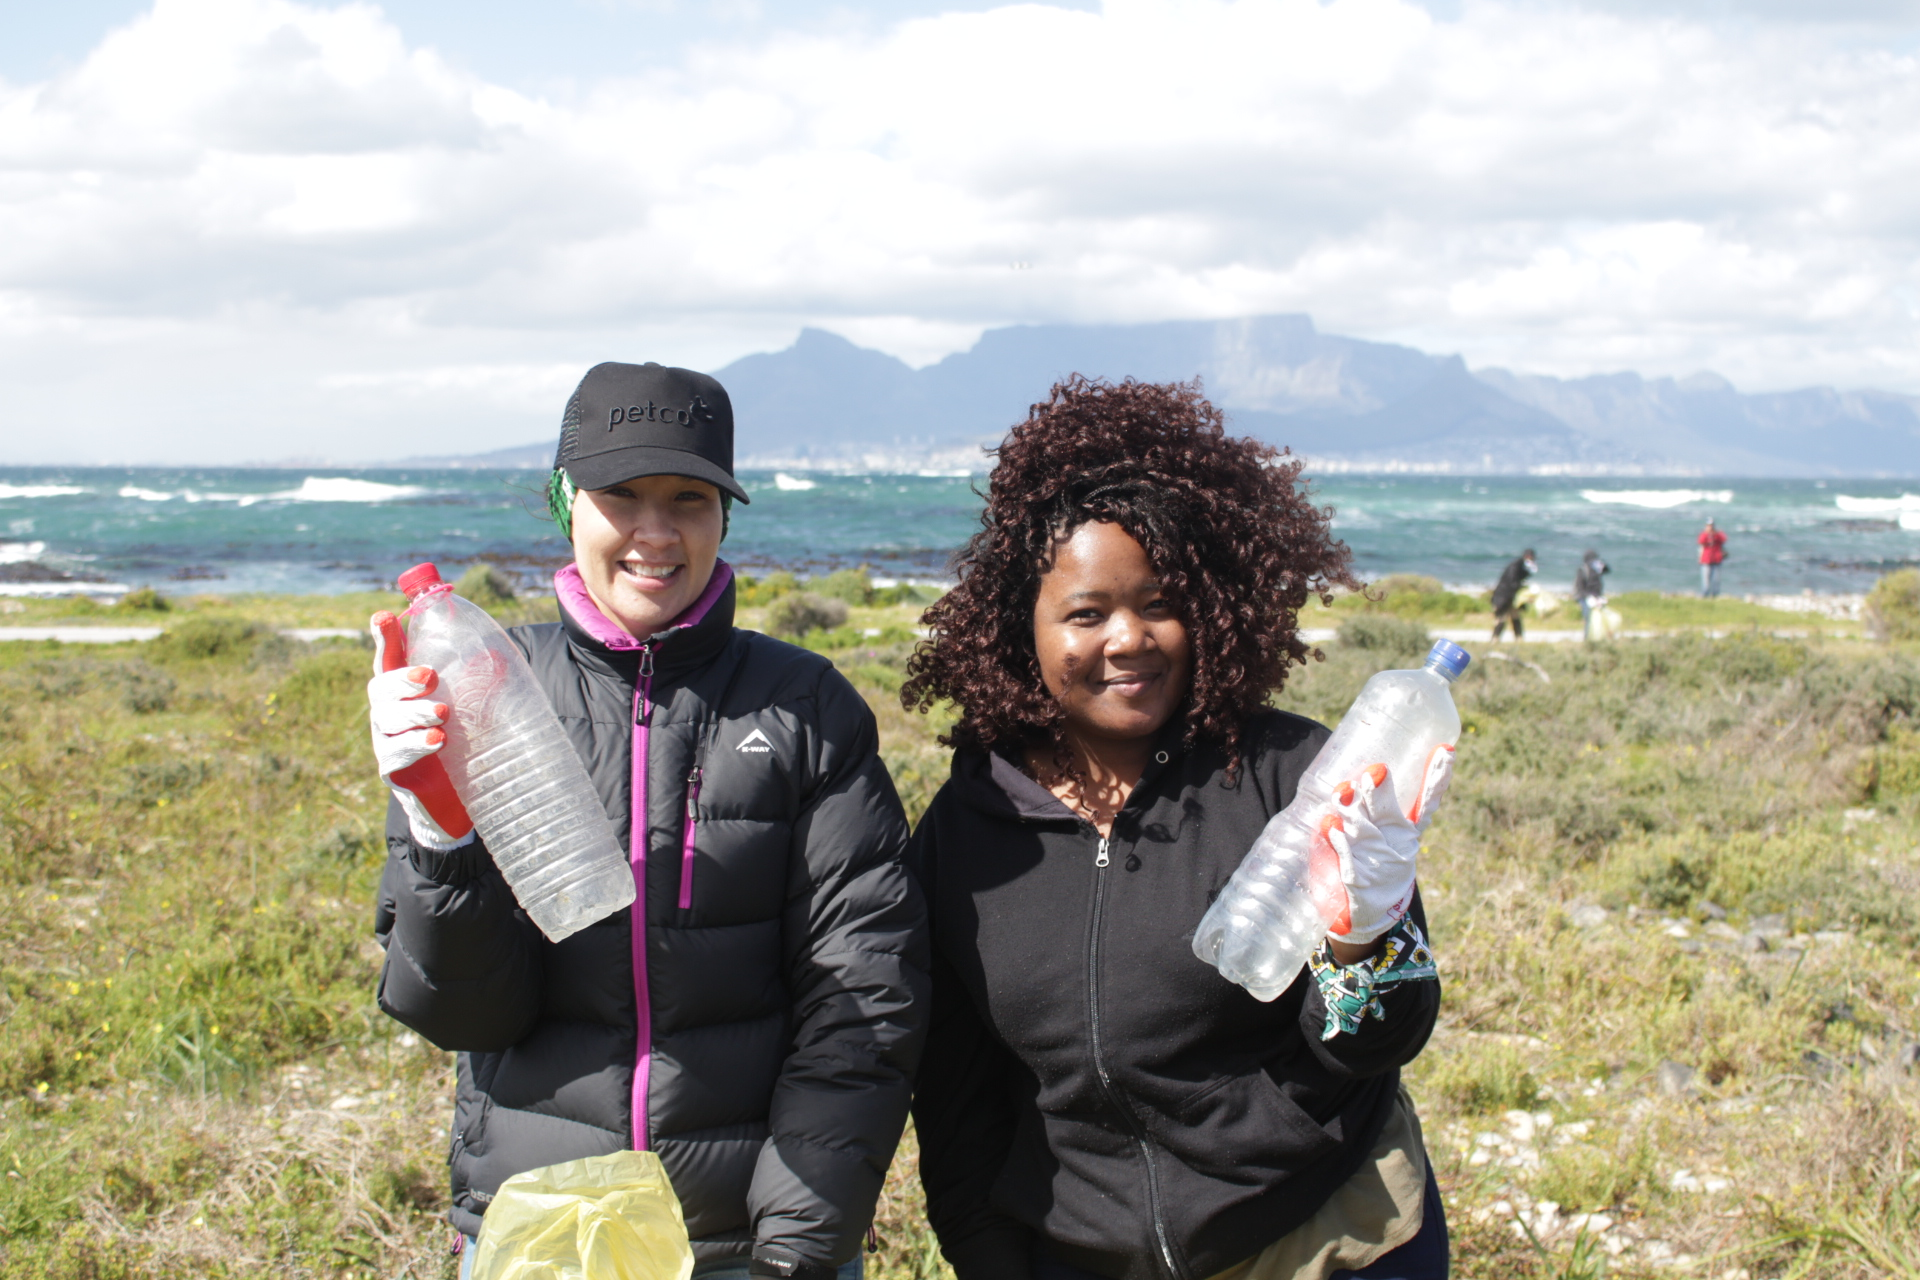 PETCO cleans up Robben Island for International Coastal Clean-up Day